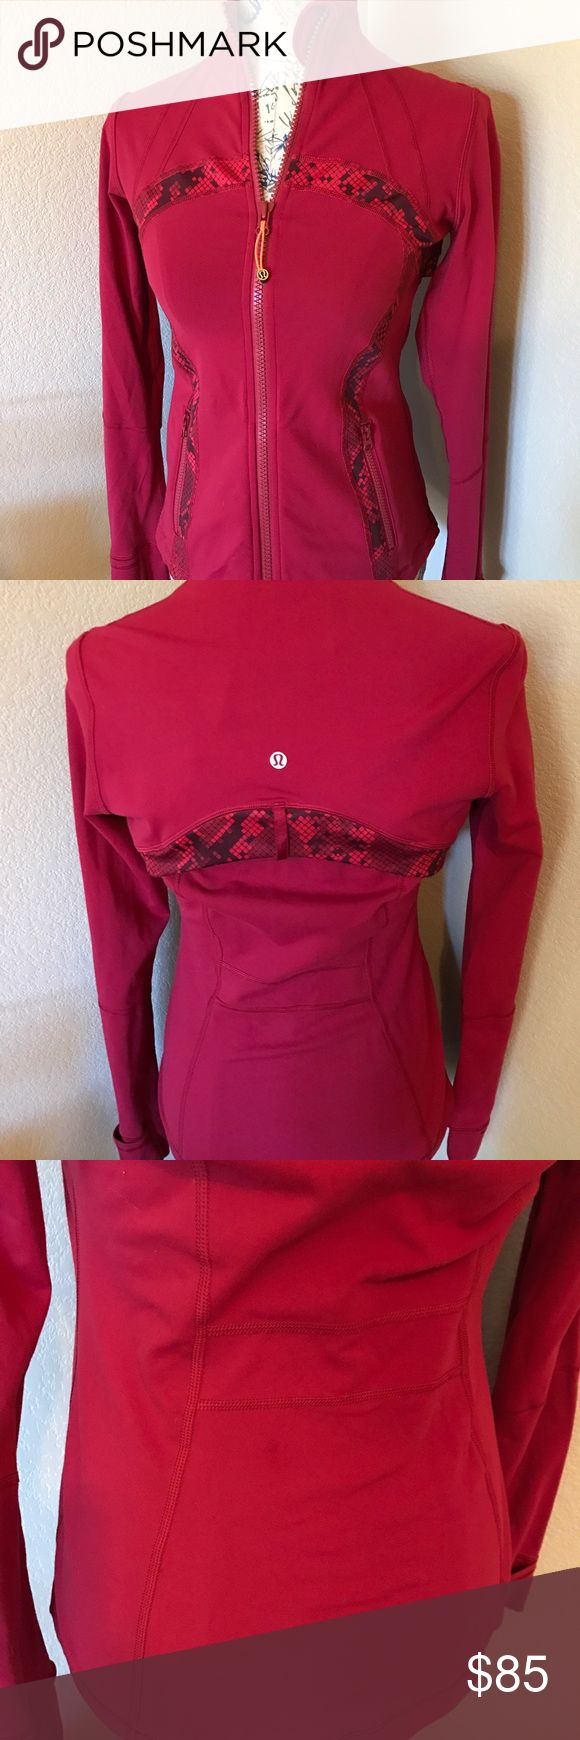 Lululemon Define Jacket - Size 10 Lululemon Define Jacket - Size 10. EUC - Like new...worn twice. There is a small dark spot on the jacket that I didn't notice till after purchase but couldn't exchange as they were out of this style. Color is a pretty Red/Pink with Reptile trim. lululemon athletica Other